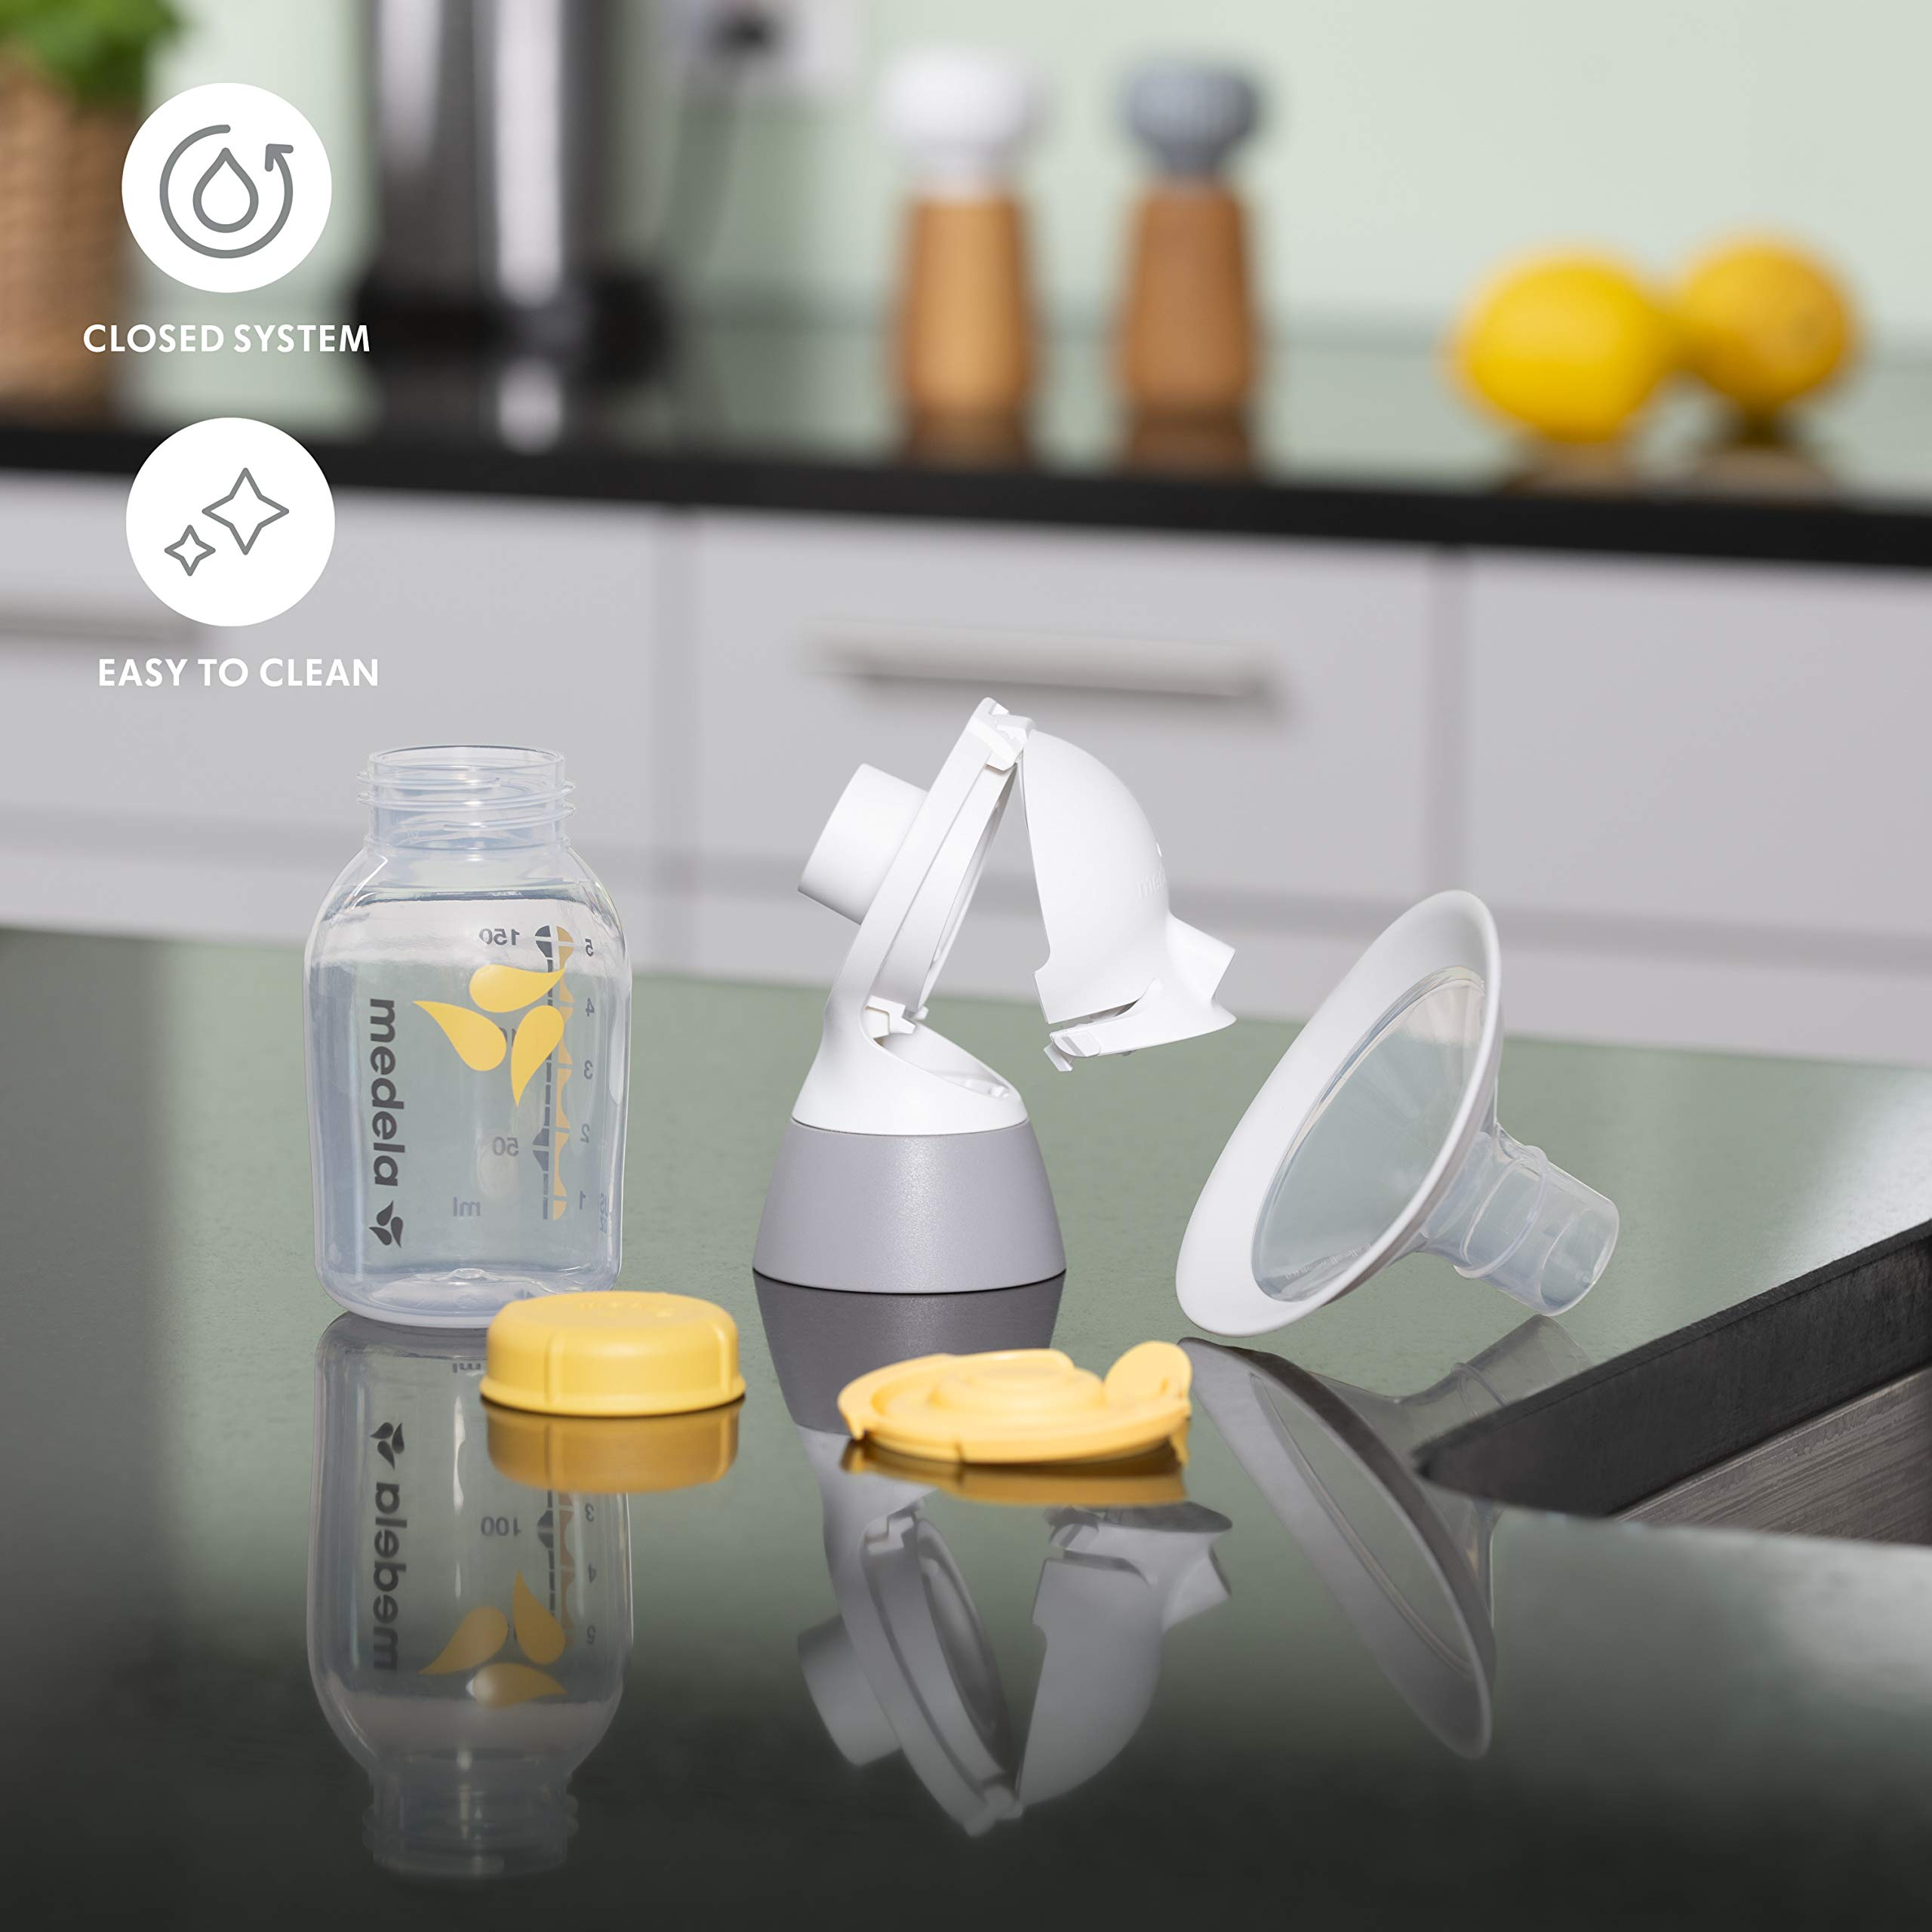 Medela New Pump in Style with MaxFlow, Electric Breast Pump, Closed System, Portable, 2020 Version